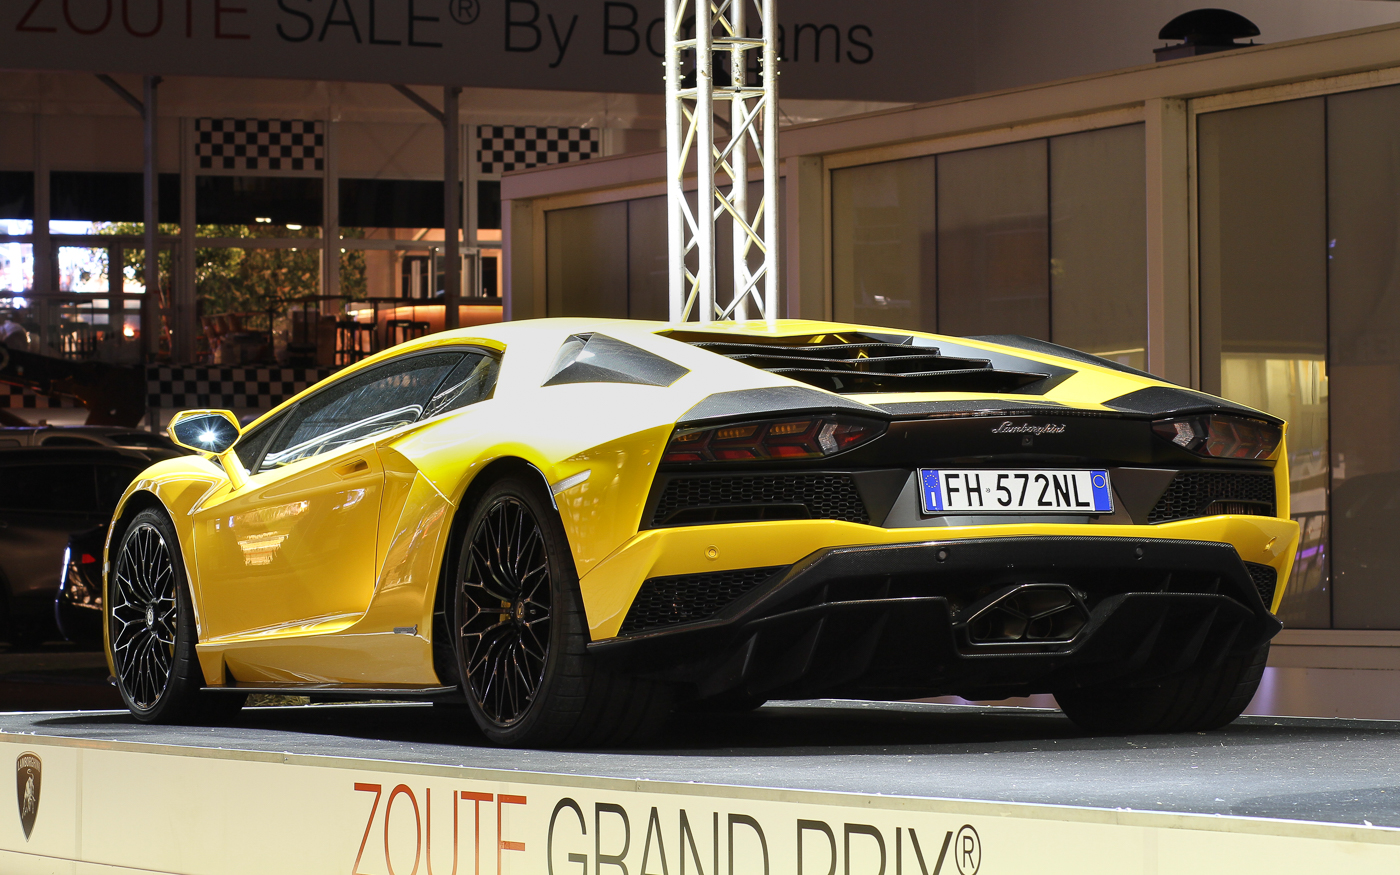 Zoute Grand Prix en Top Marques in foto's